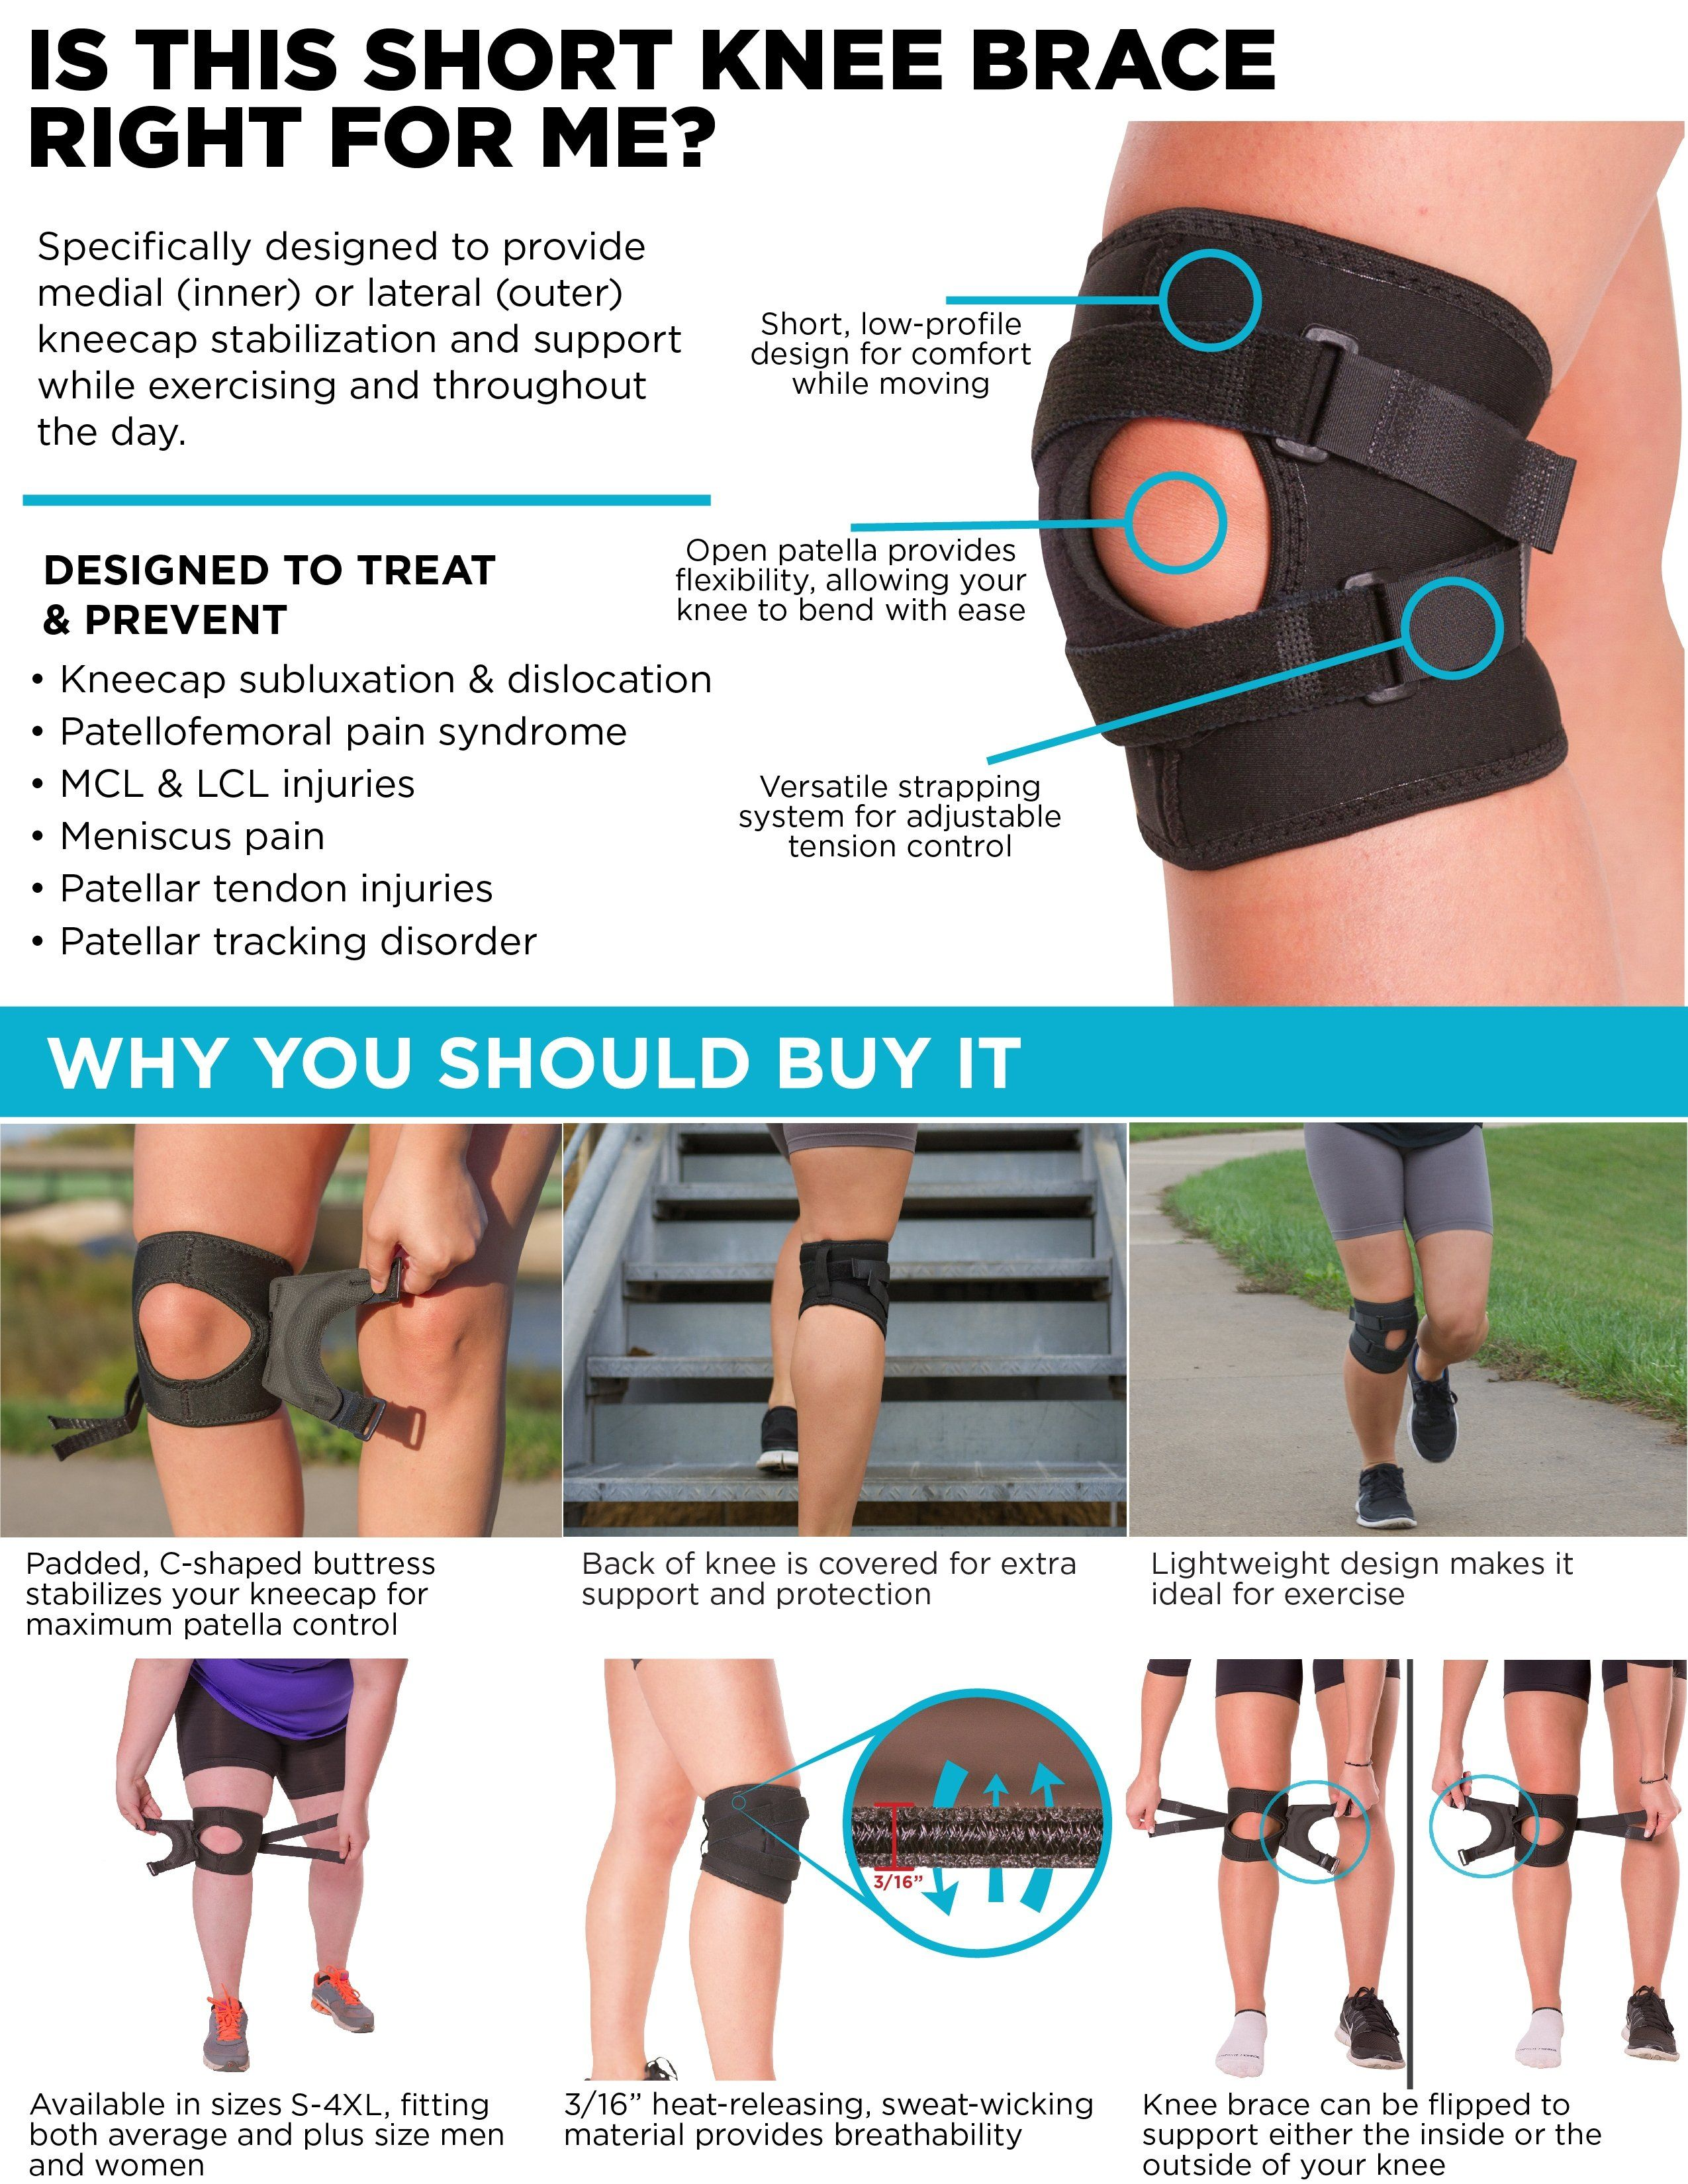 Bath & Shower Analytical 1 Pcs Professional Adjustable Knee Support Strengthened Gel Knee Brace Strap Breathable Leg Knee Pads Scrub Bodys Treatmen Selected Material Beauty & Health